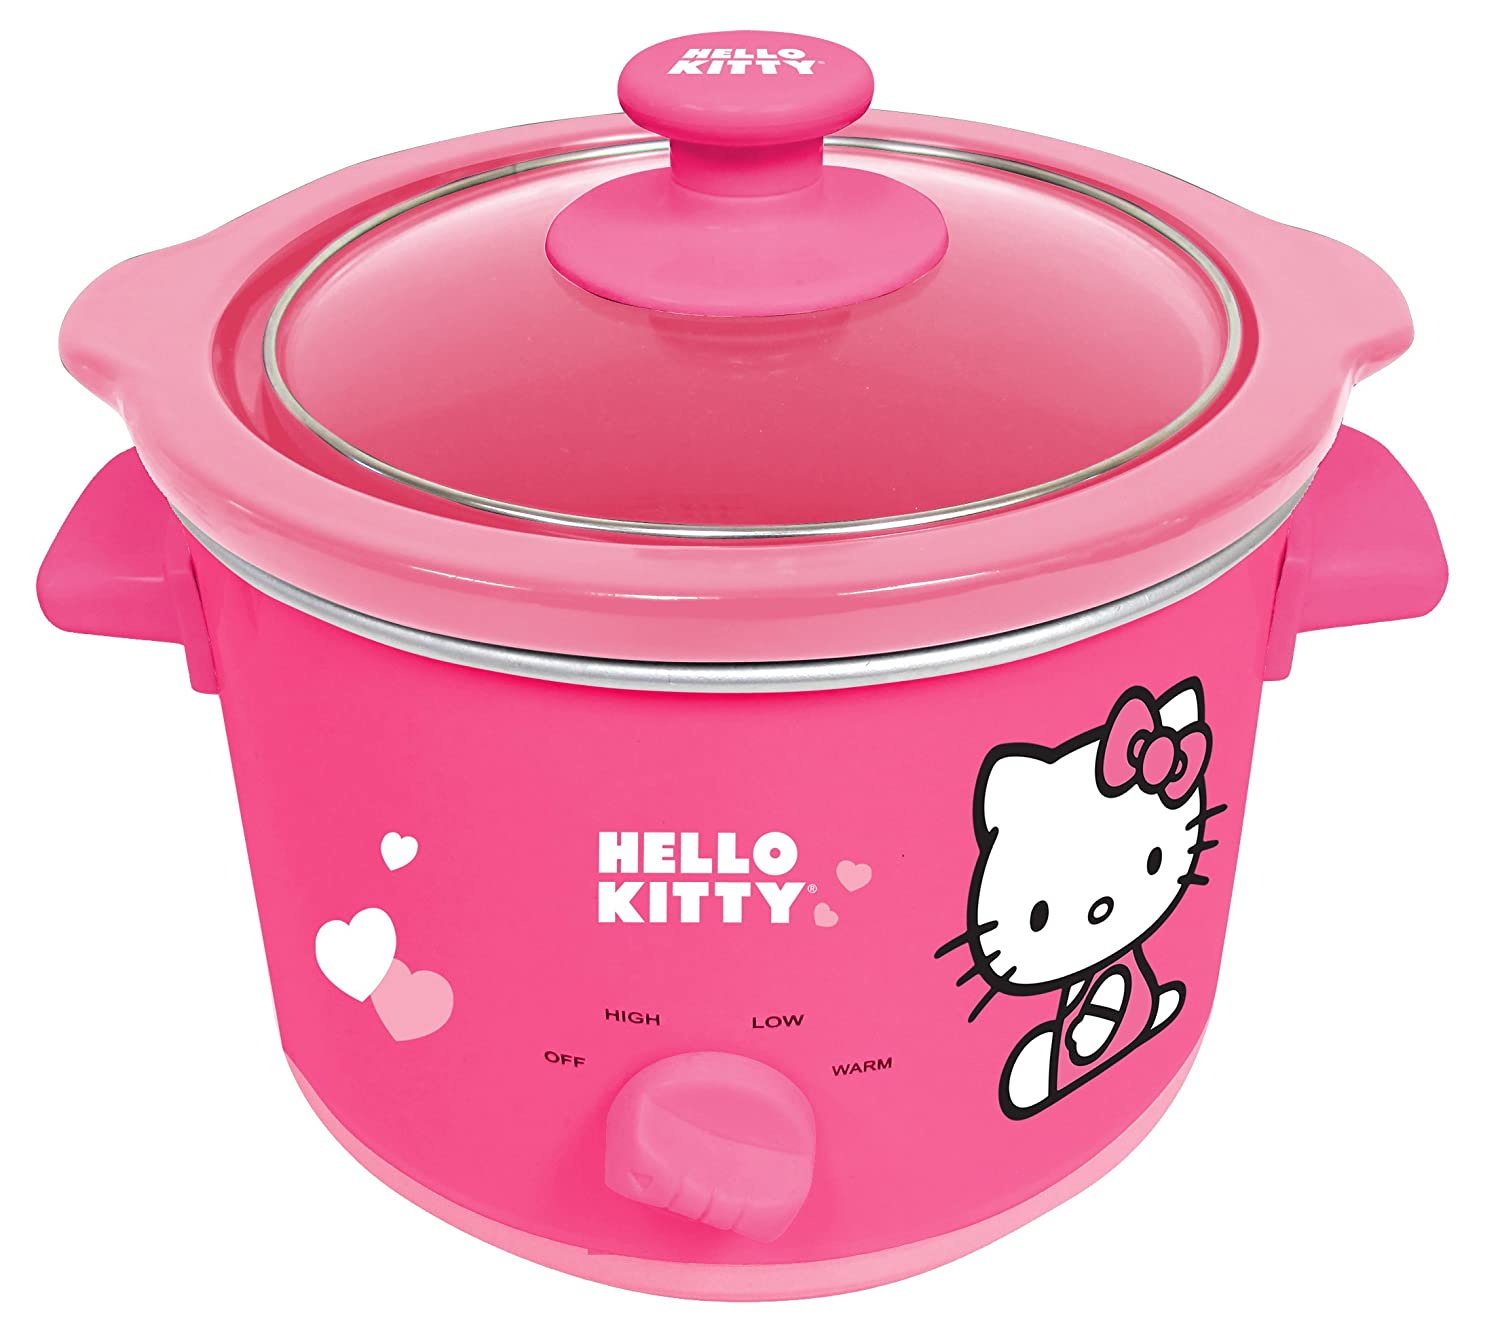 Hello Kitty Items Up To 91% Off From Amazon ($19.99